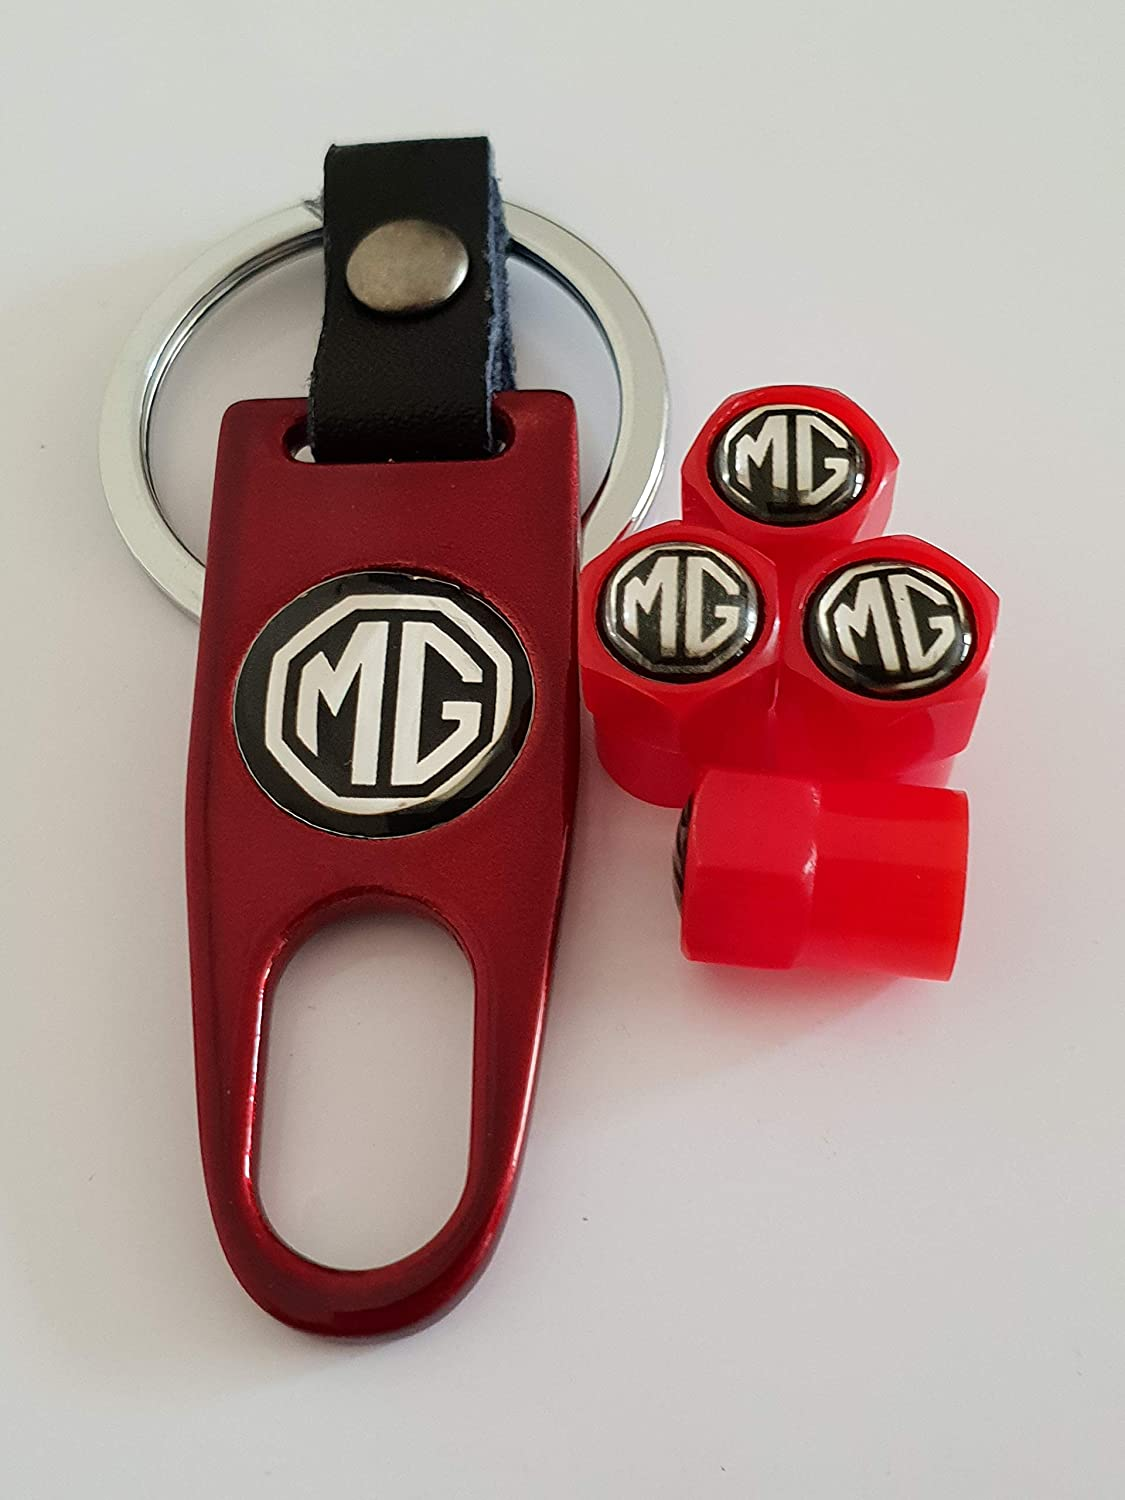 Speed Demons MG red Valve Dust Caps with Spanner Keychain Keyring for all models Plastic non Stick